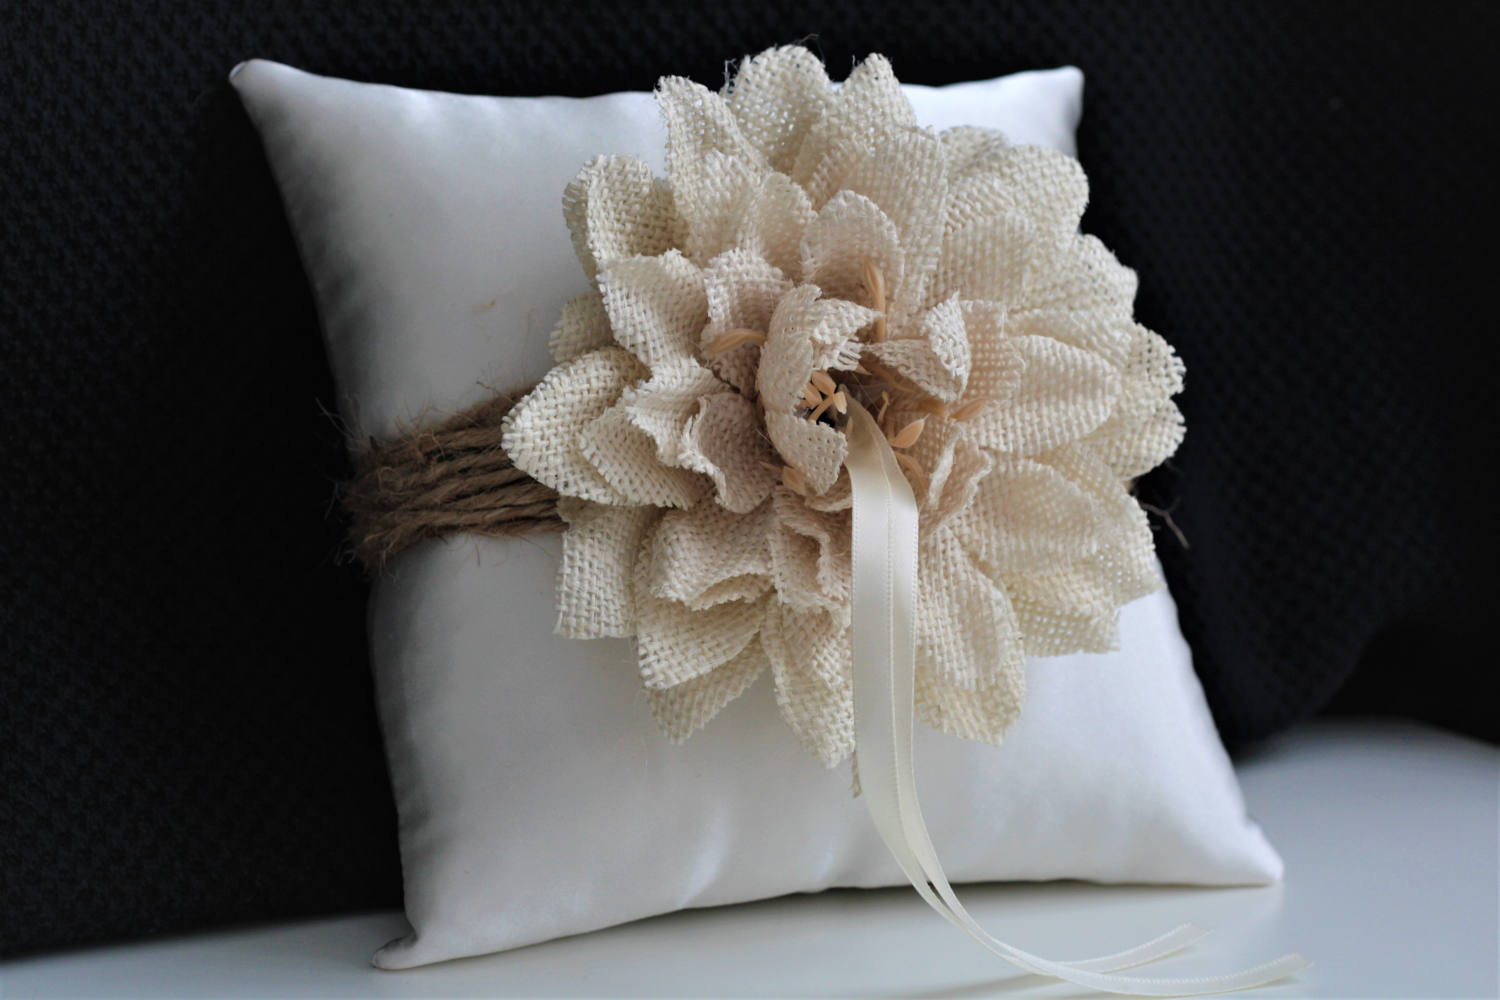 luna connie rustic pillows new and next in pillow ring birds wedding bearer